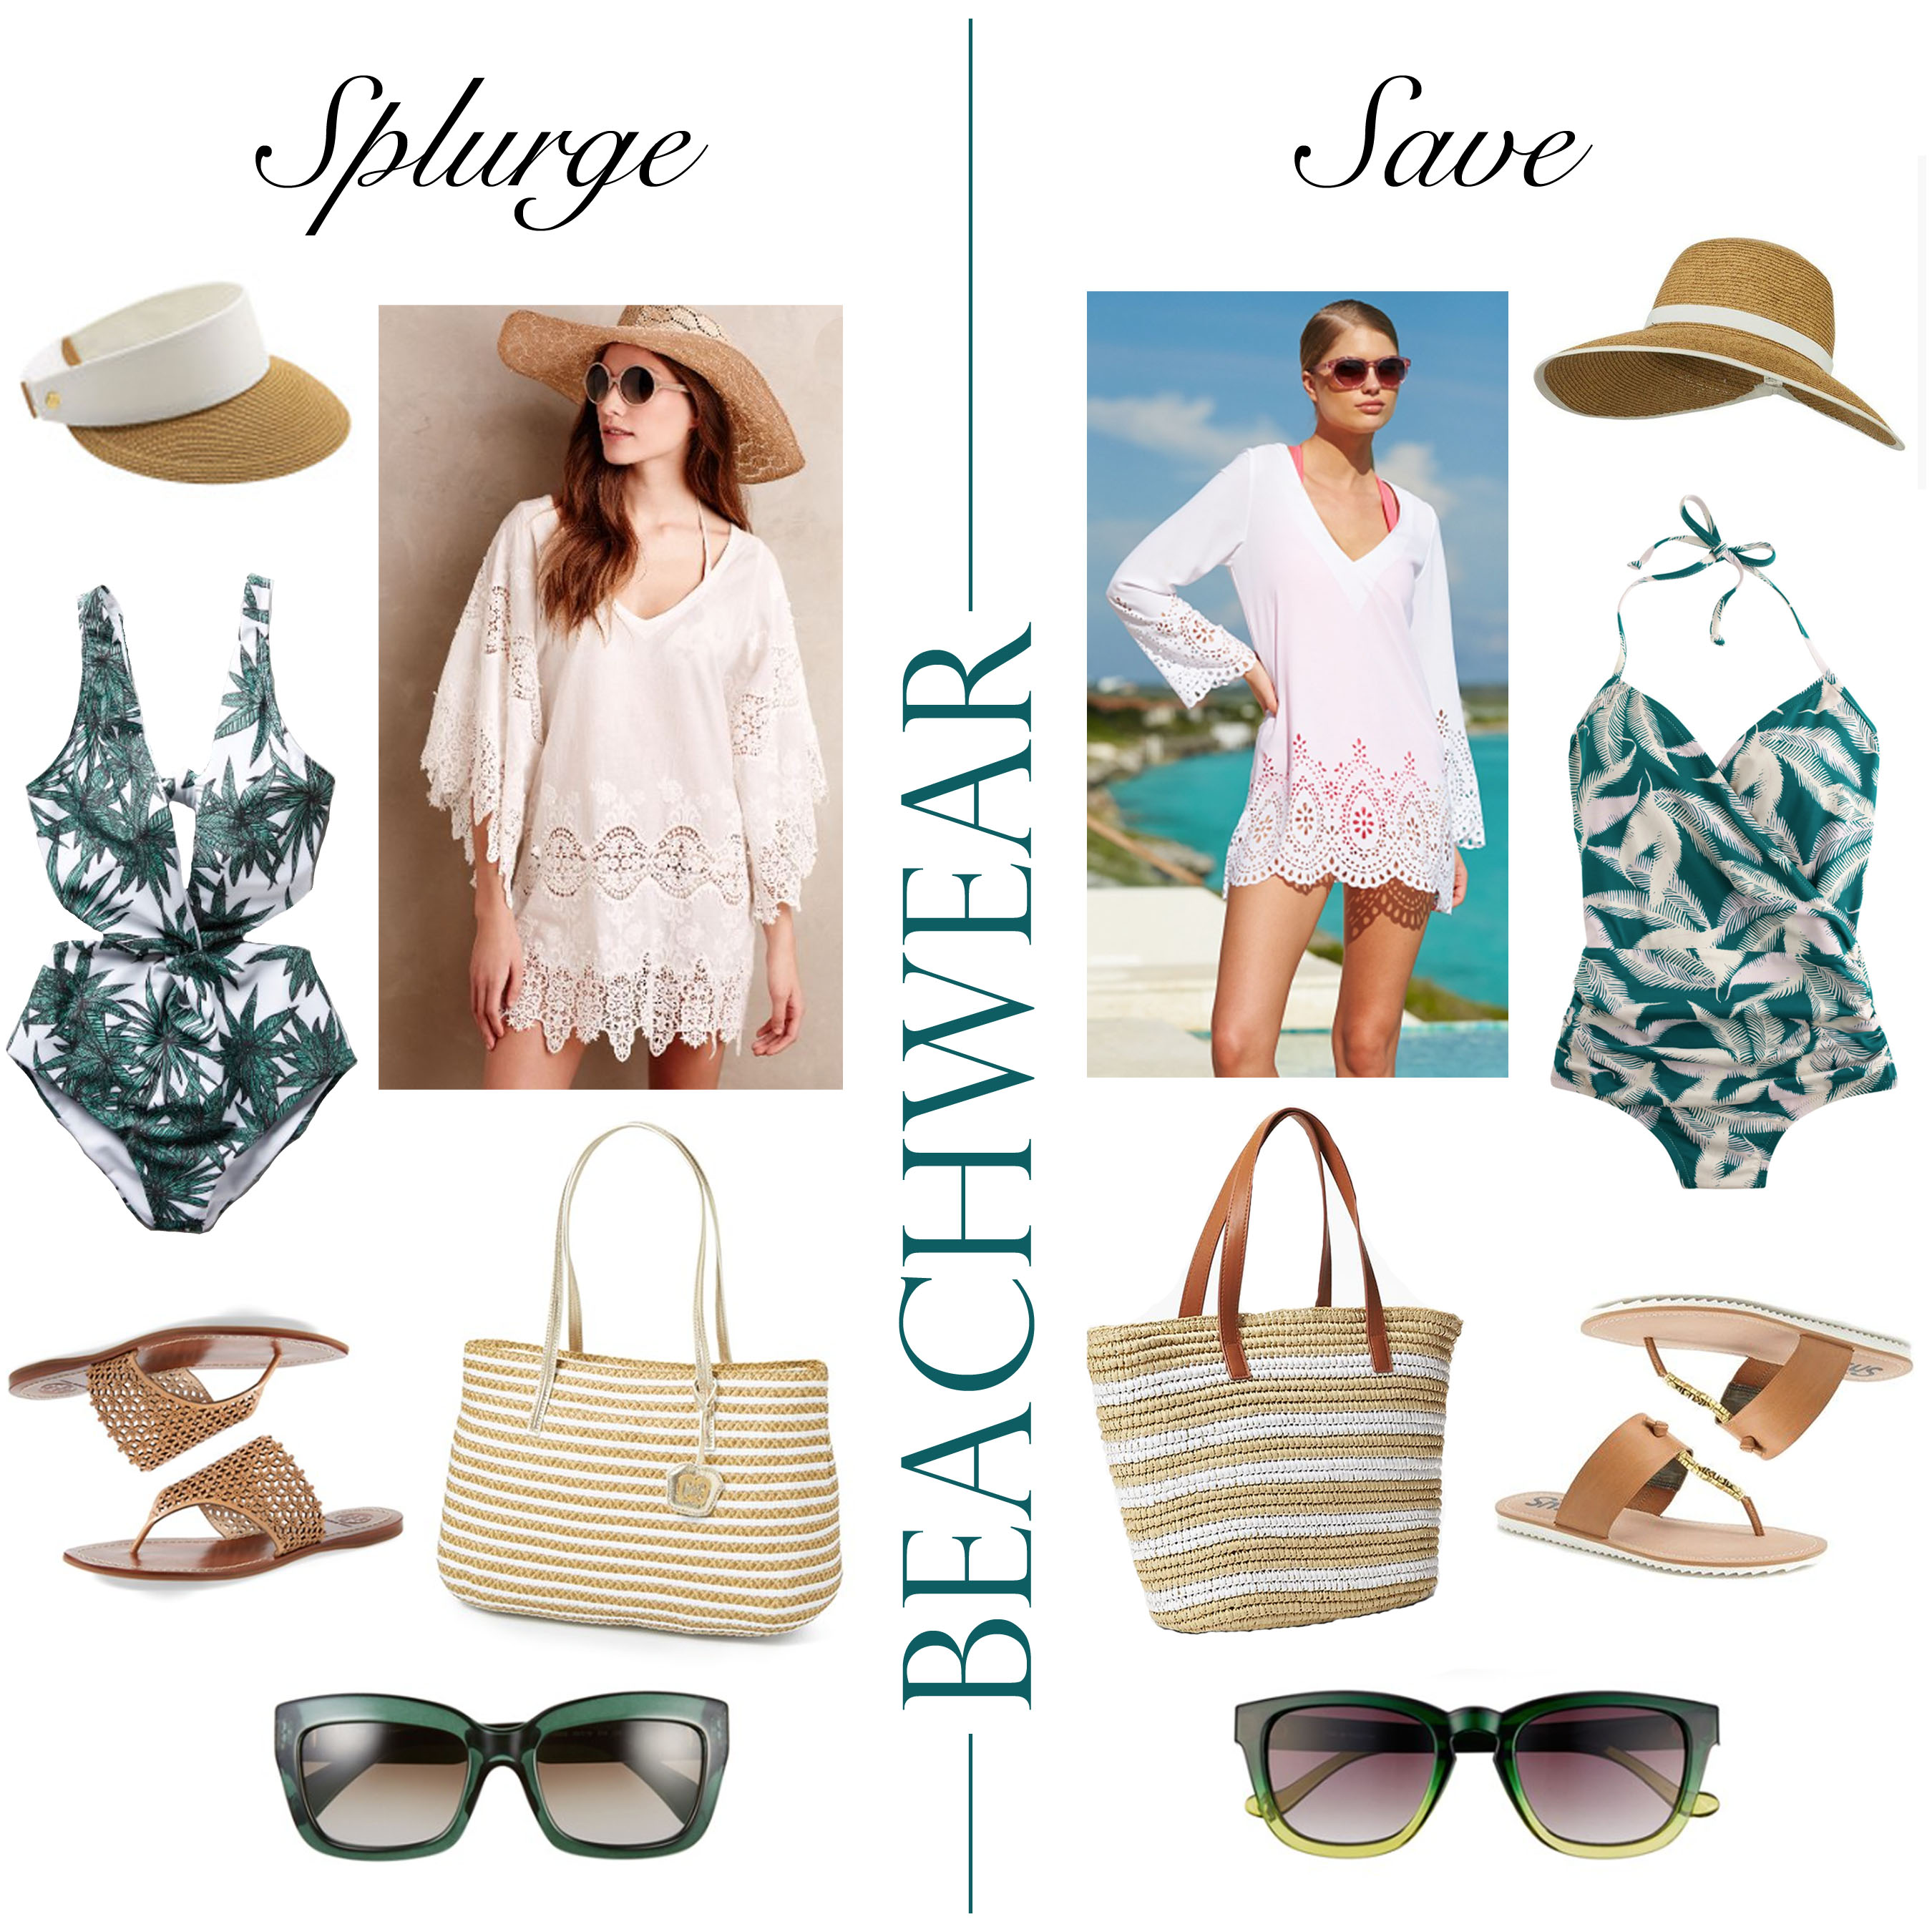 CHIC SUMMER VACATION INSPIRATION